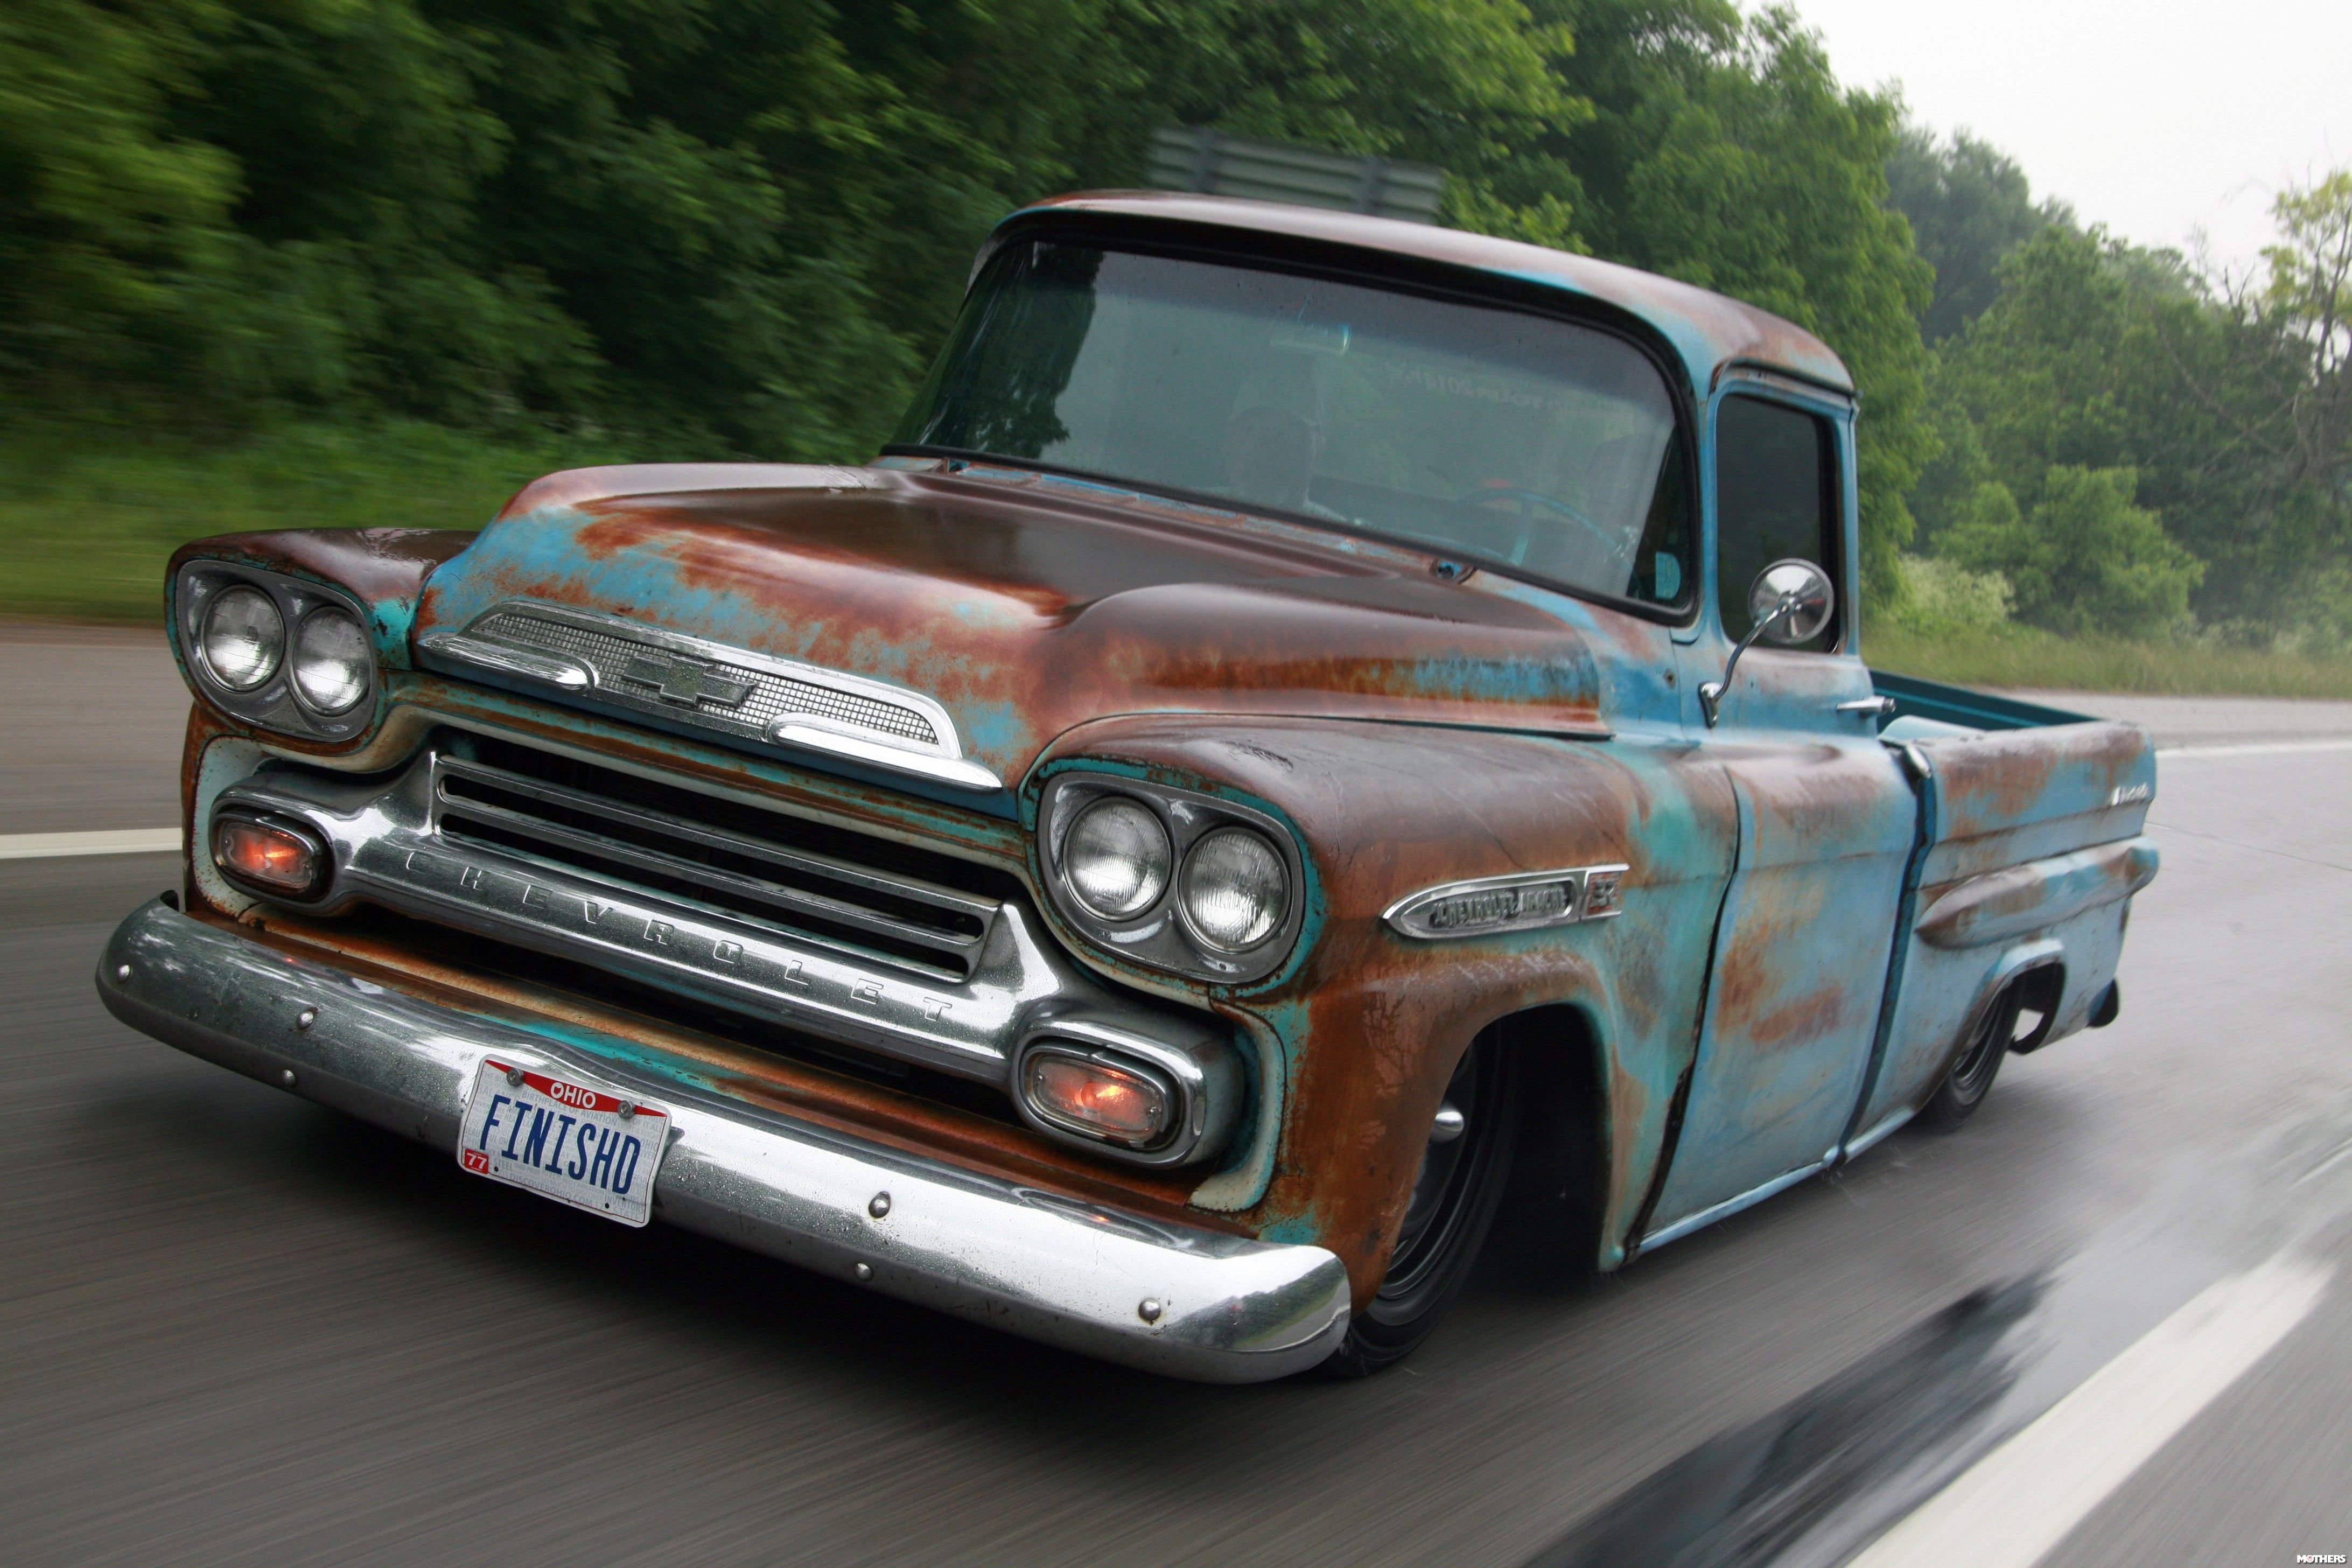 The license plate on this fantastic Chevy Apache Fleetside